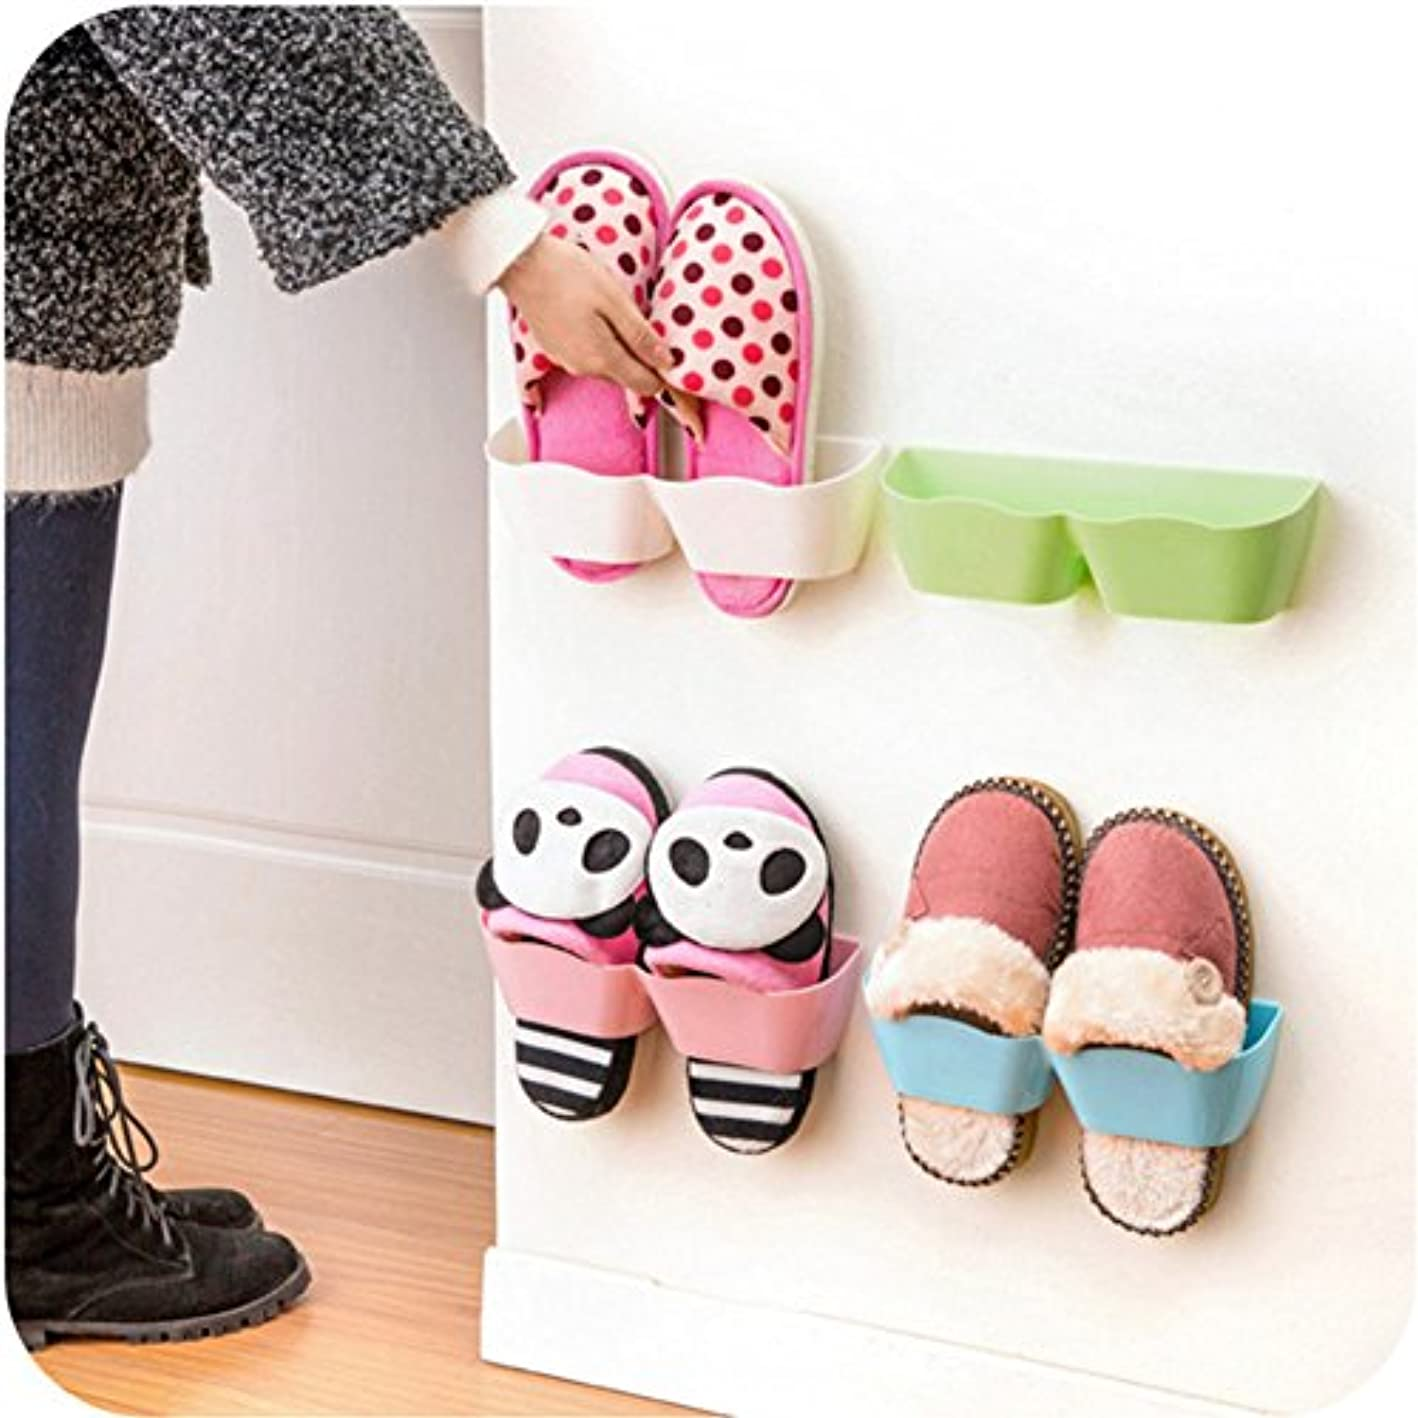 Hever by The Door Shoe Rack Plastic Shoe Organizer Stick on The Wall Set of 5